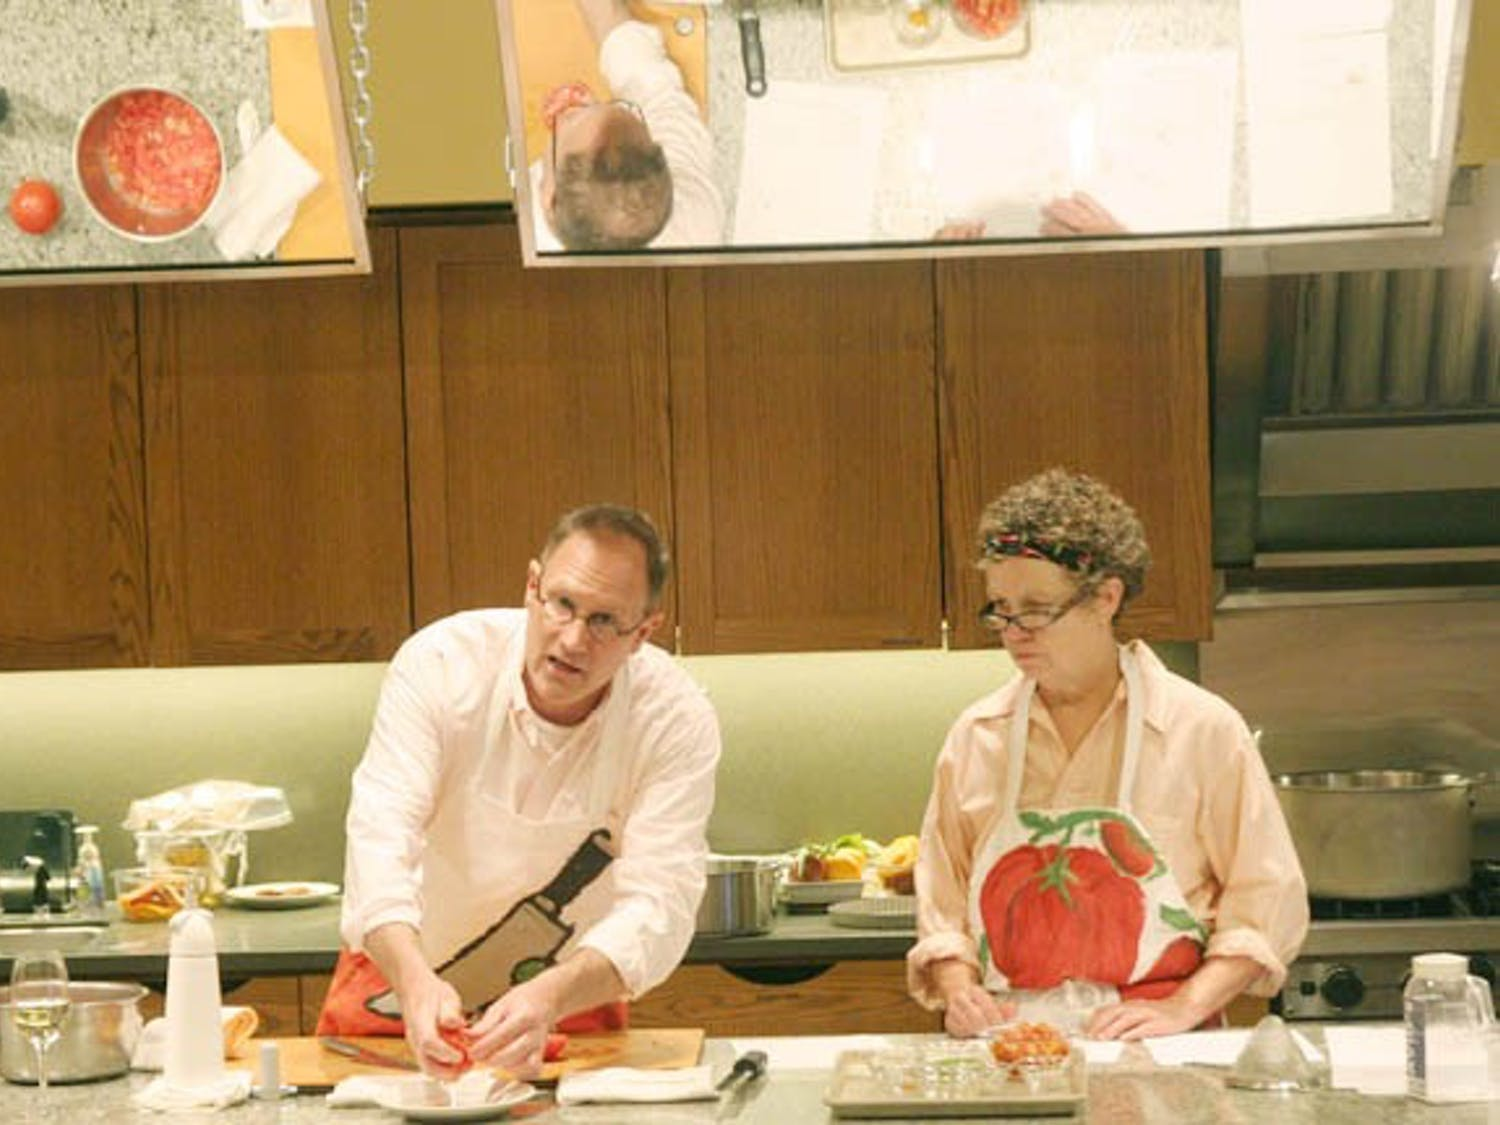 Award winning culinary geniuses Mark Day,owner of the Mark Day Company, and Peggy Bloodworth teach students their craft  at Southern Season located at the University Mall, Chapel Hill, NC Tuesday June 28,2011.